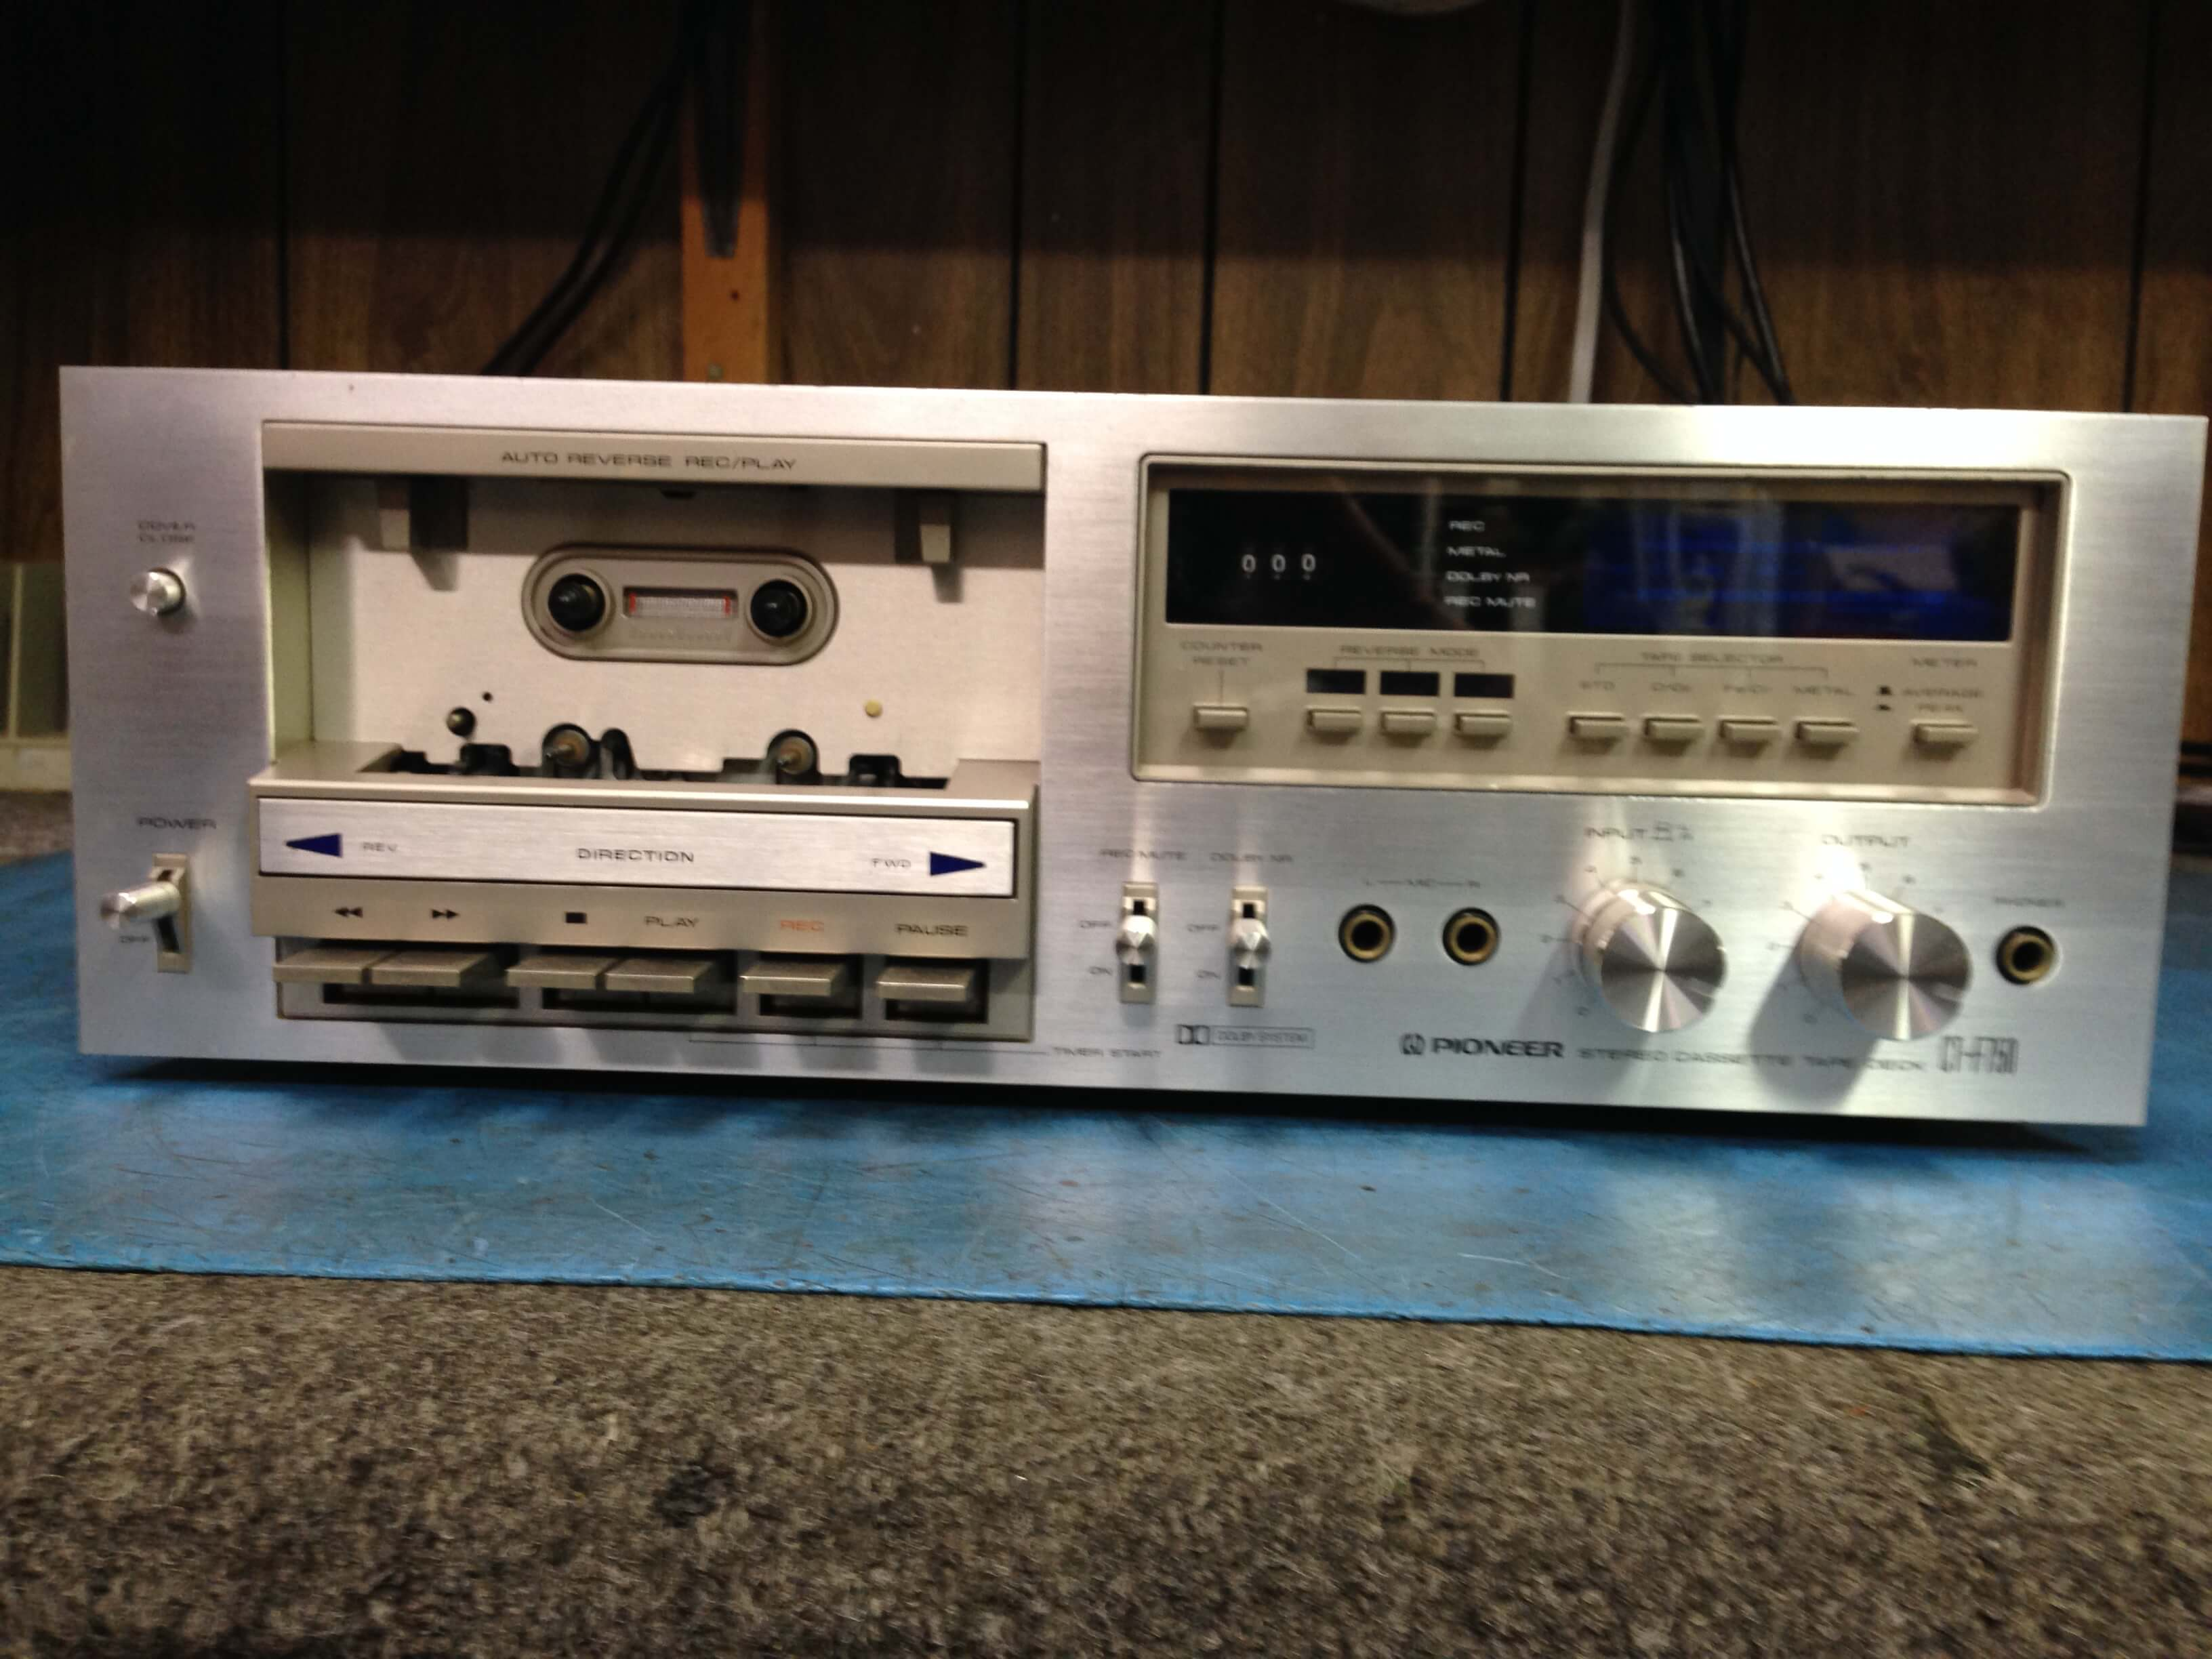 Pioneer CT-F750 Stereo Auto Reverse Cassette Tape Deck